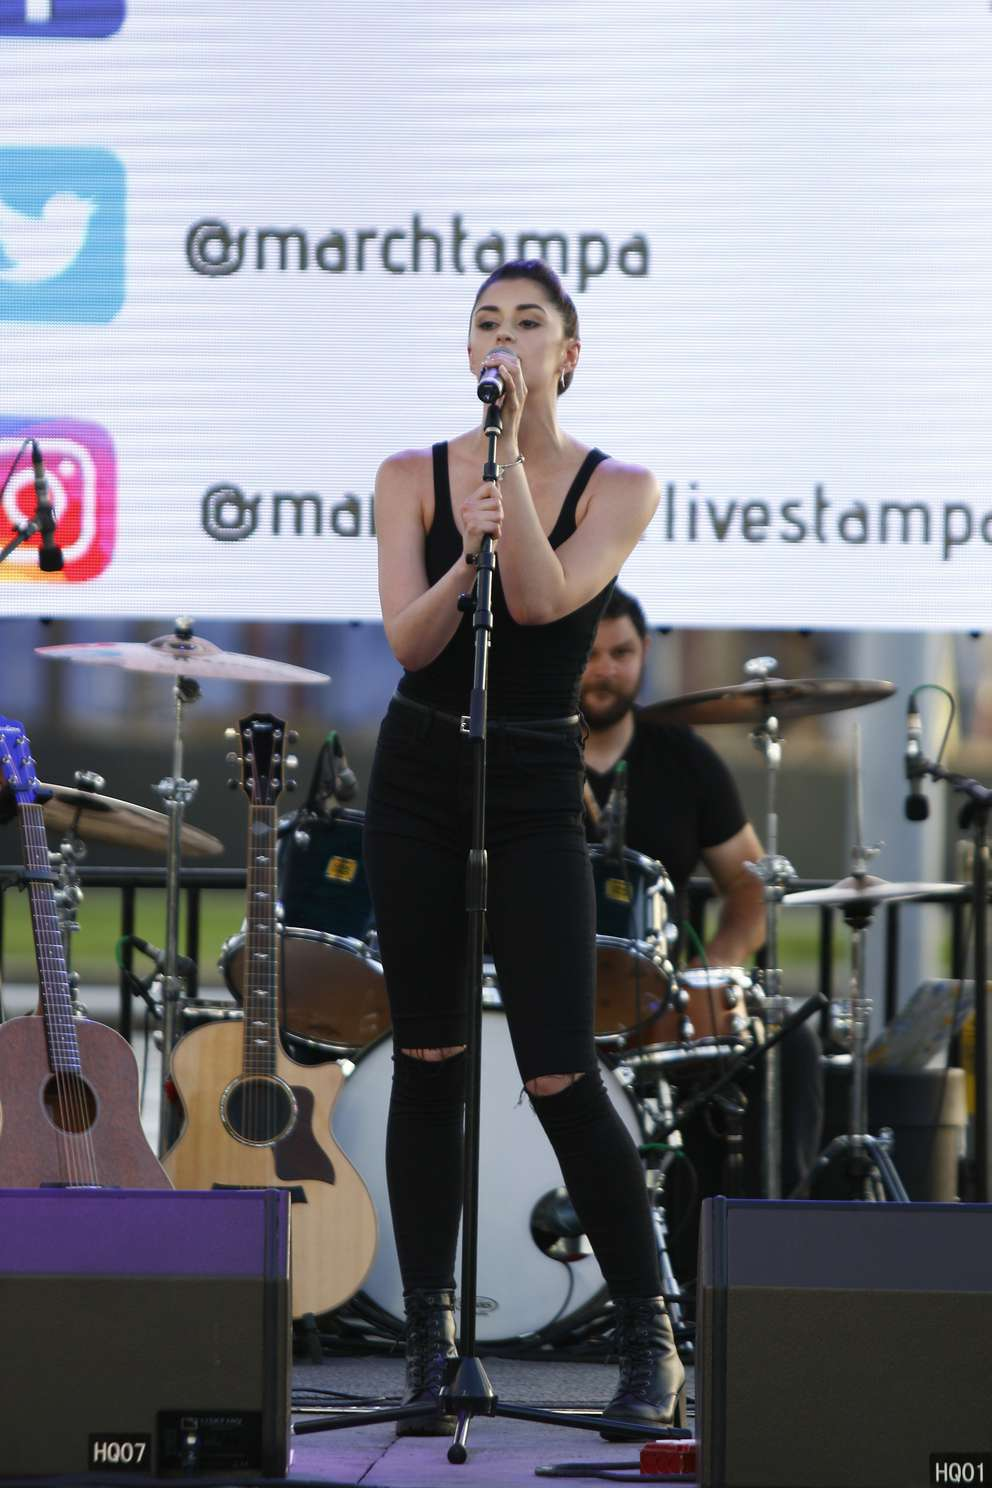 Eden Shireen performs on stage at Bands and Ballots. (LUIS SANTANA | Times)